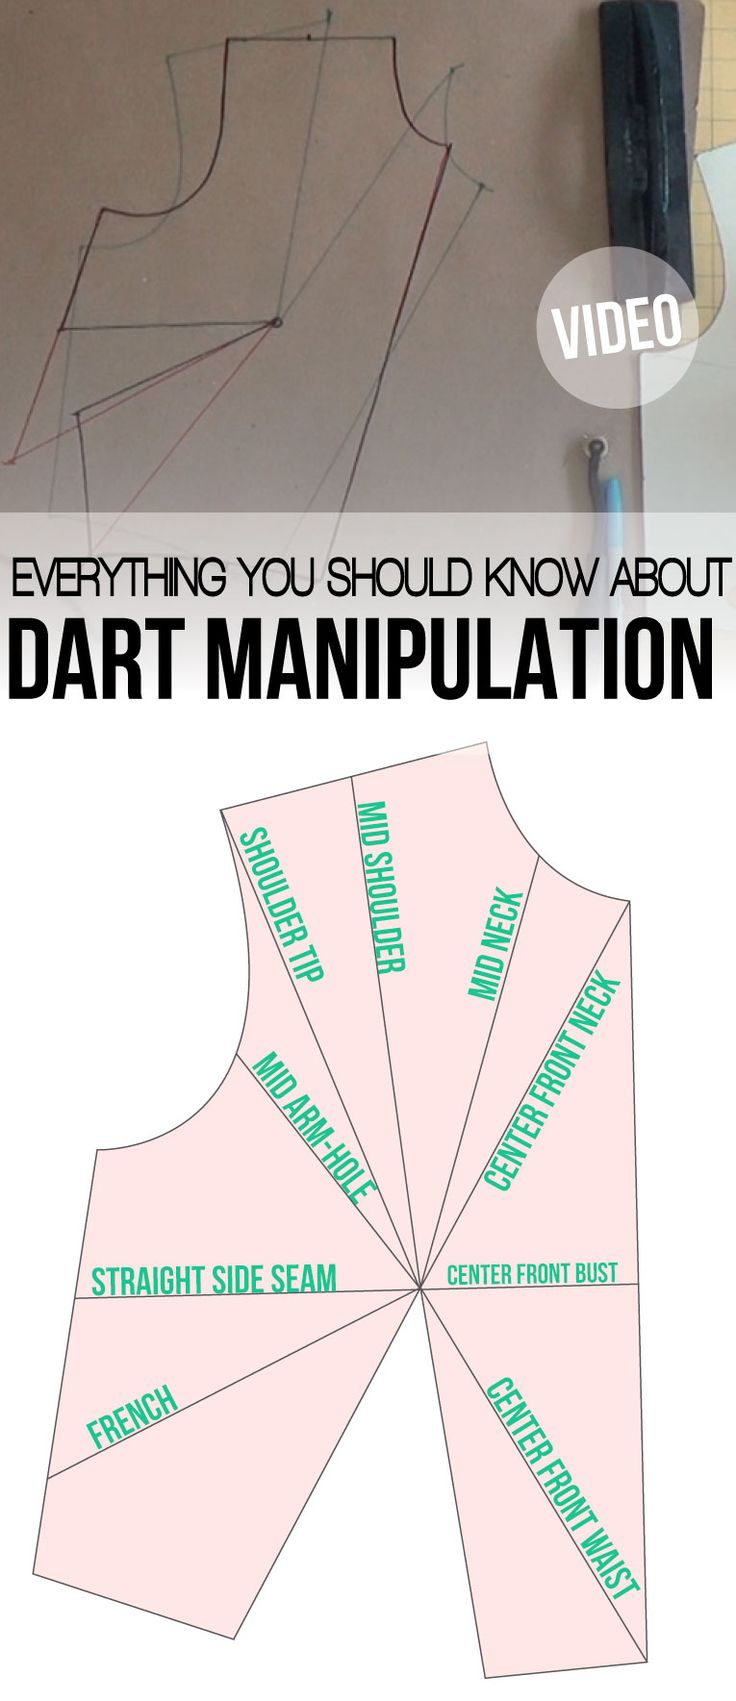 Everything you should know about dart manipulation   isntthatsew.org